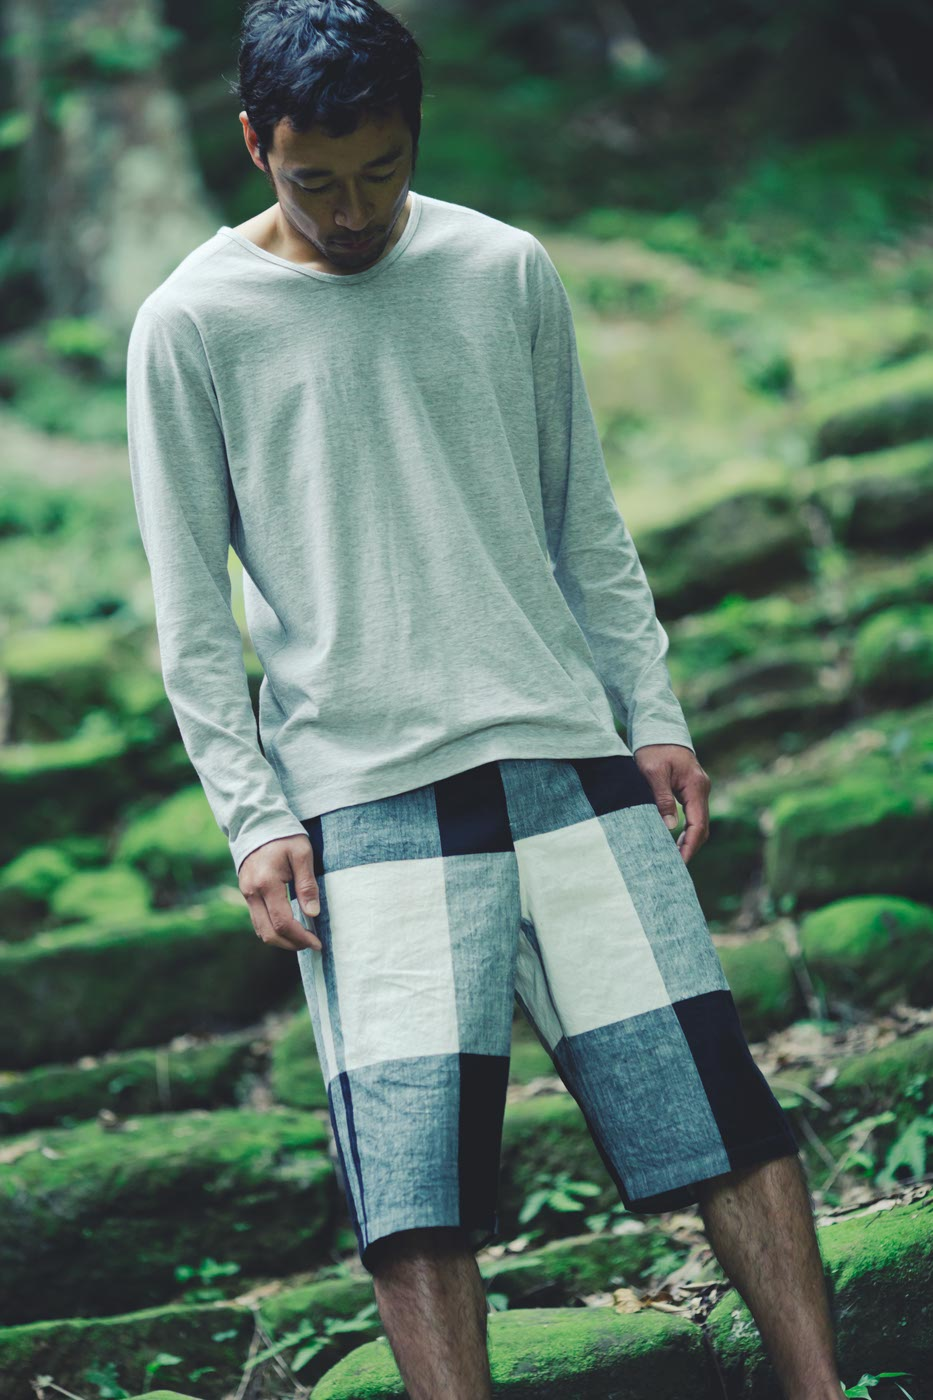 Babaghuri: Bermuda Short Trousers